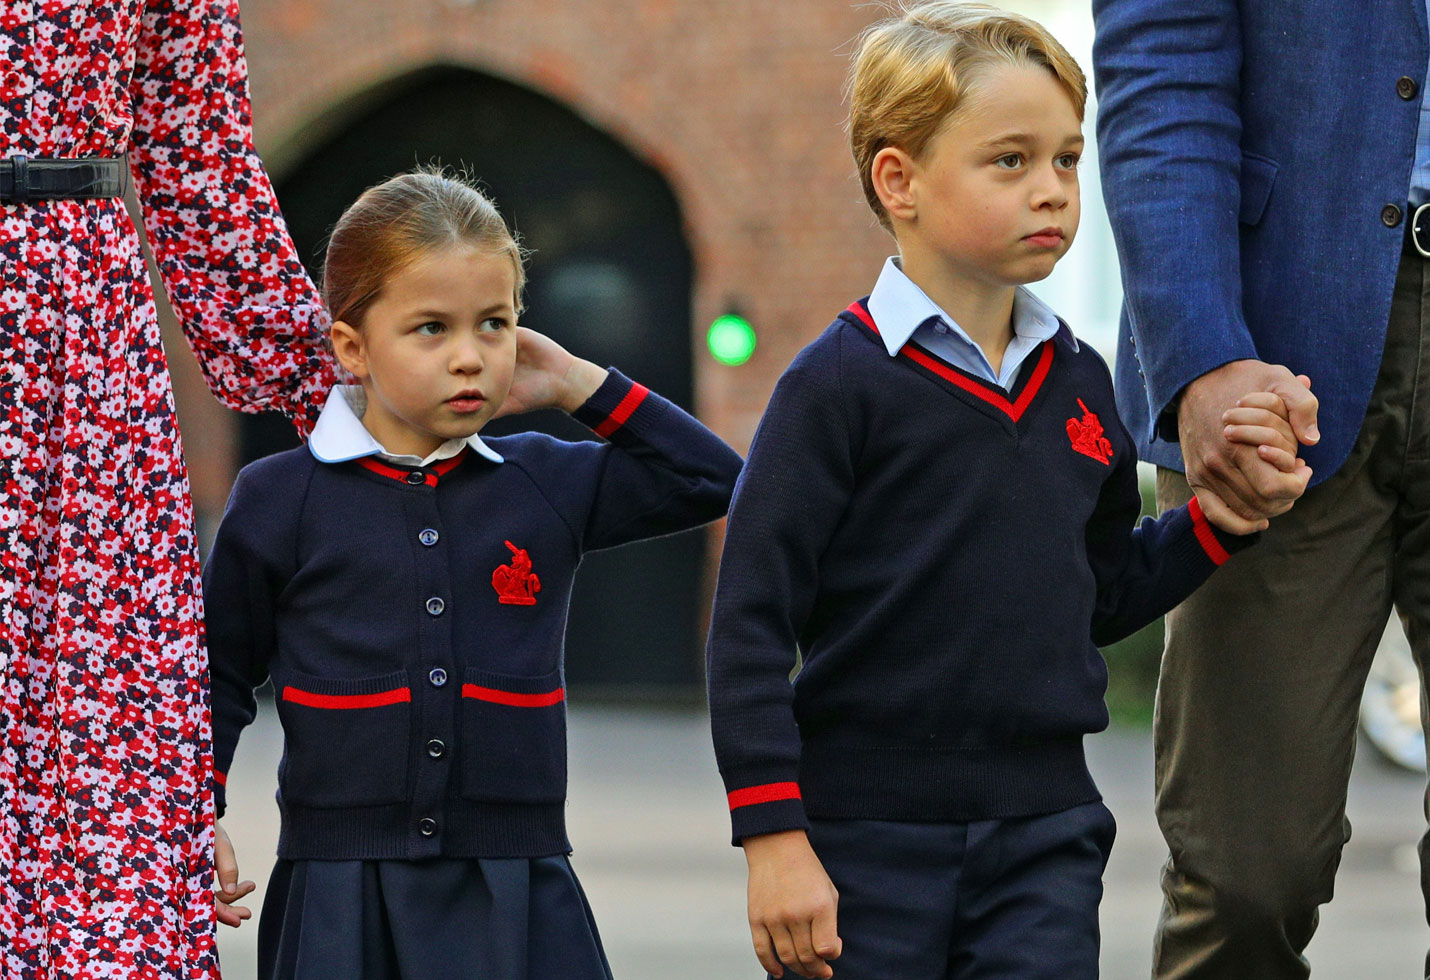 Princess Charlotte arrives for her first day of school, with her brother Prince George and her parents The Duke and Duchess of Cambridge